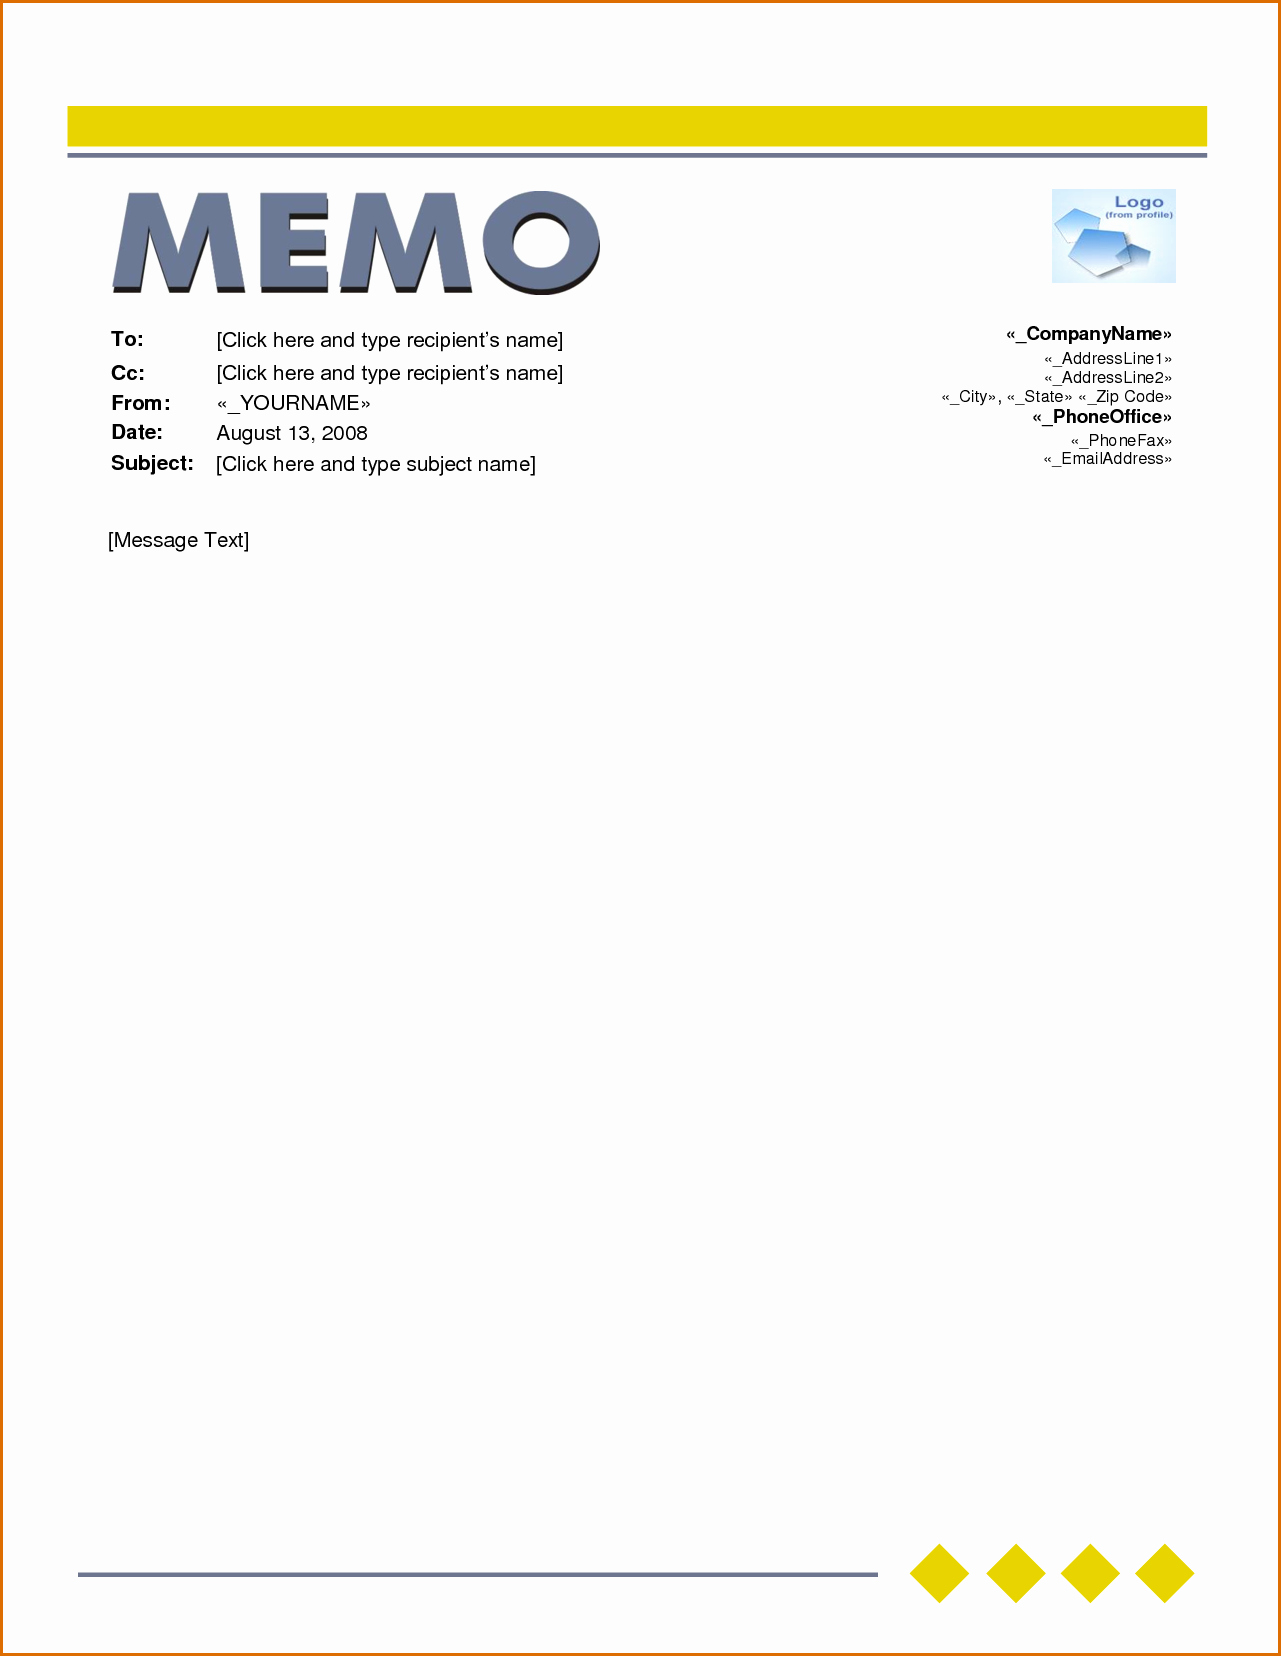 Memo Template for Word Awesome 6 Microsoft Word Memo Template